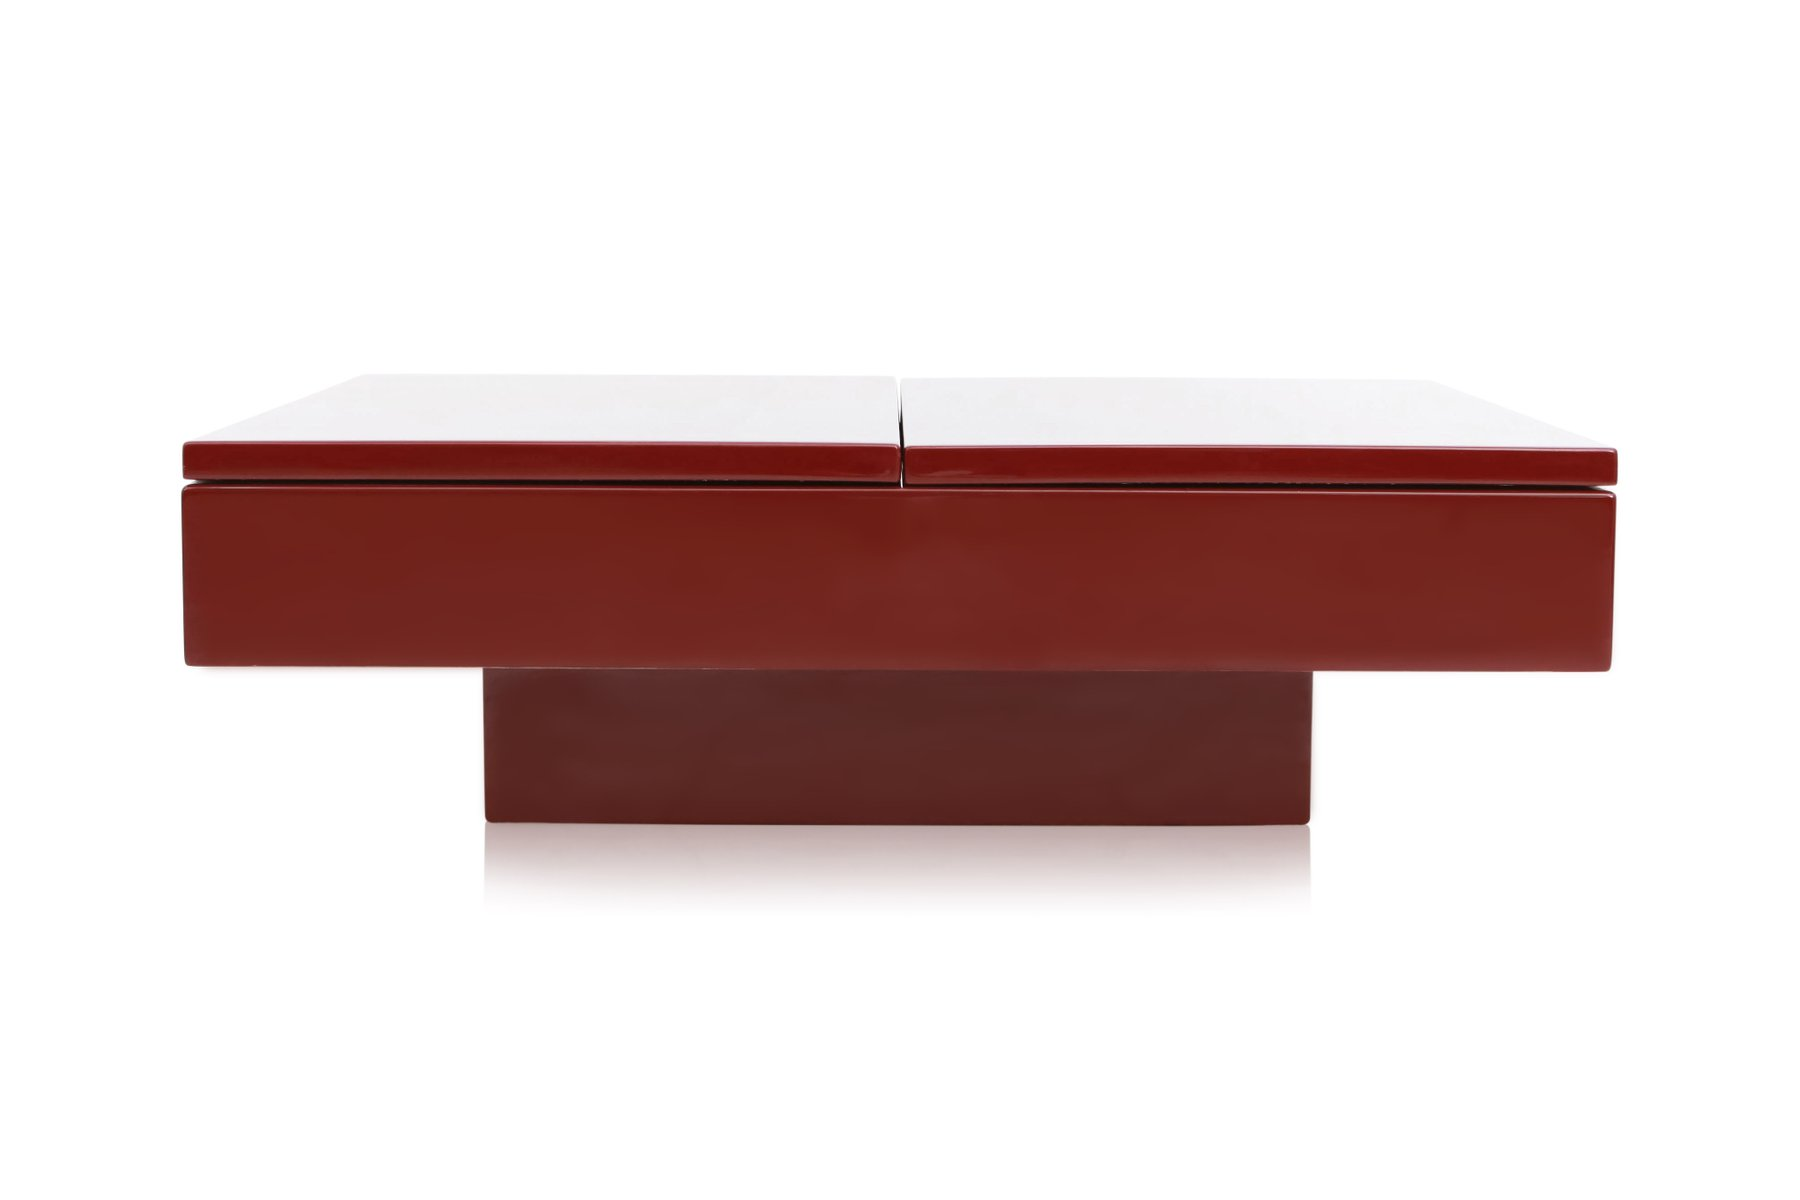 Red Lacquered Sliding Bar Coffee Table By Jean Claude Mahey, 1980s